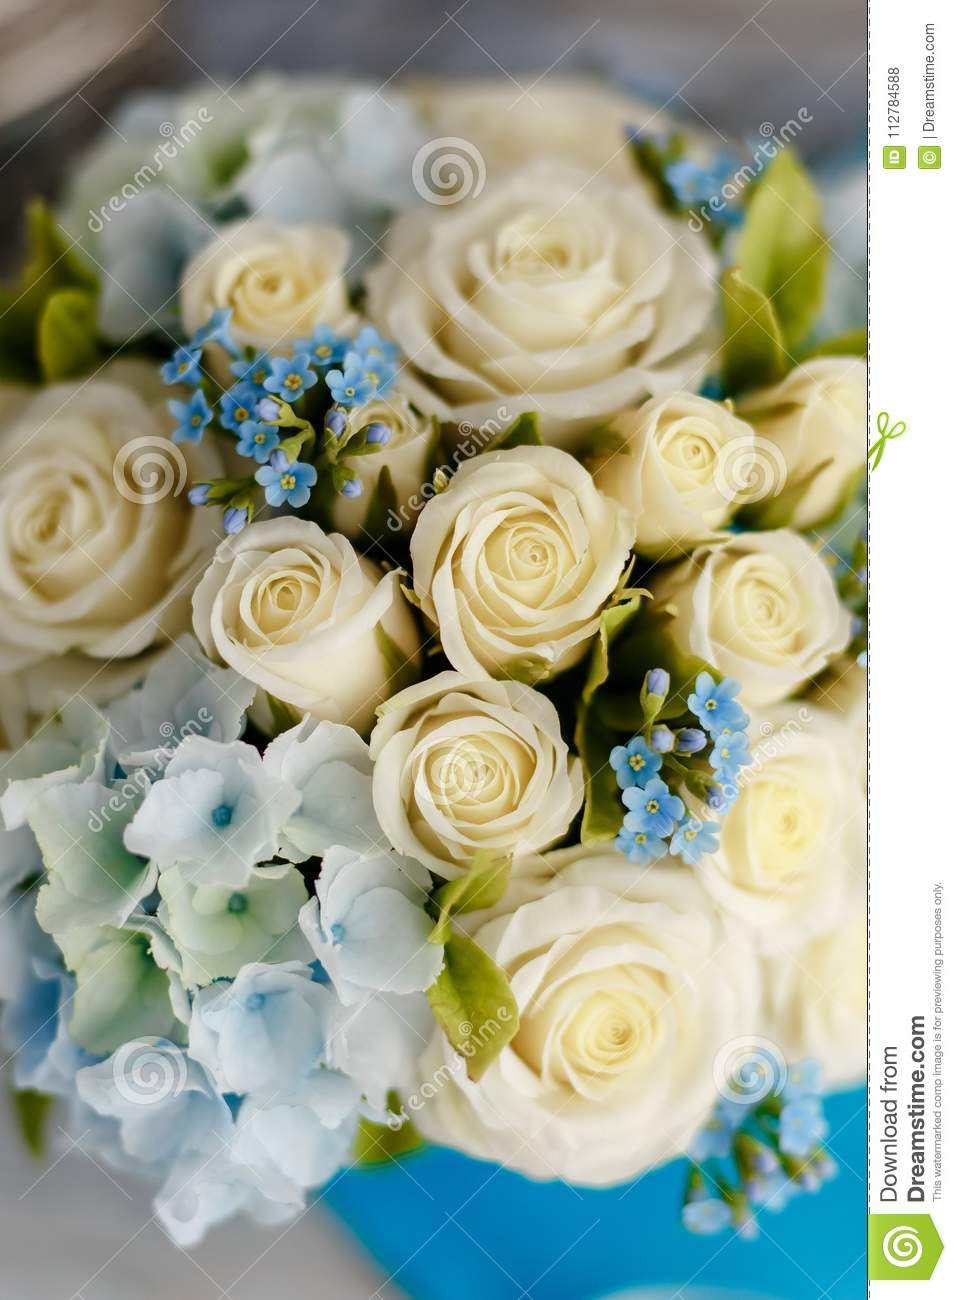 Blue And White Wedding Flowers Stock Photo Image Of Blowing